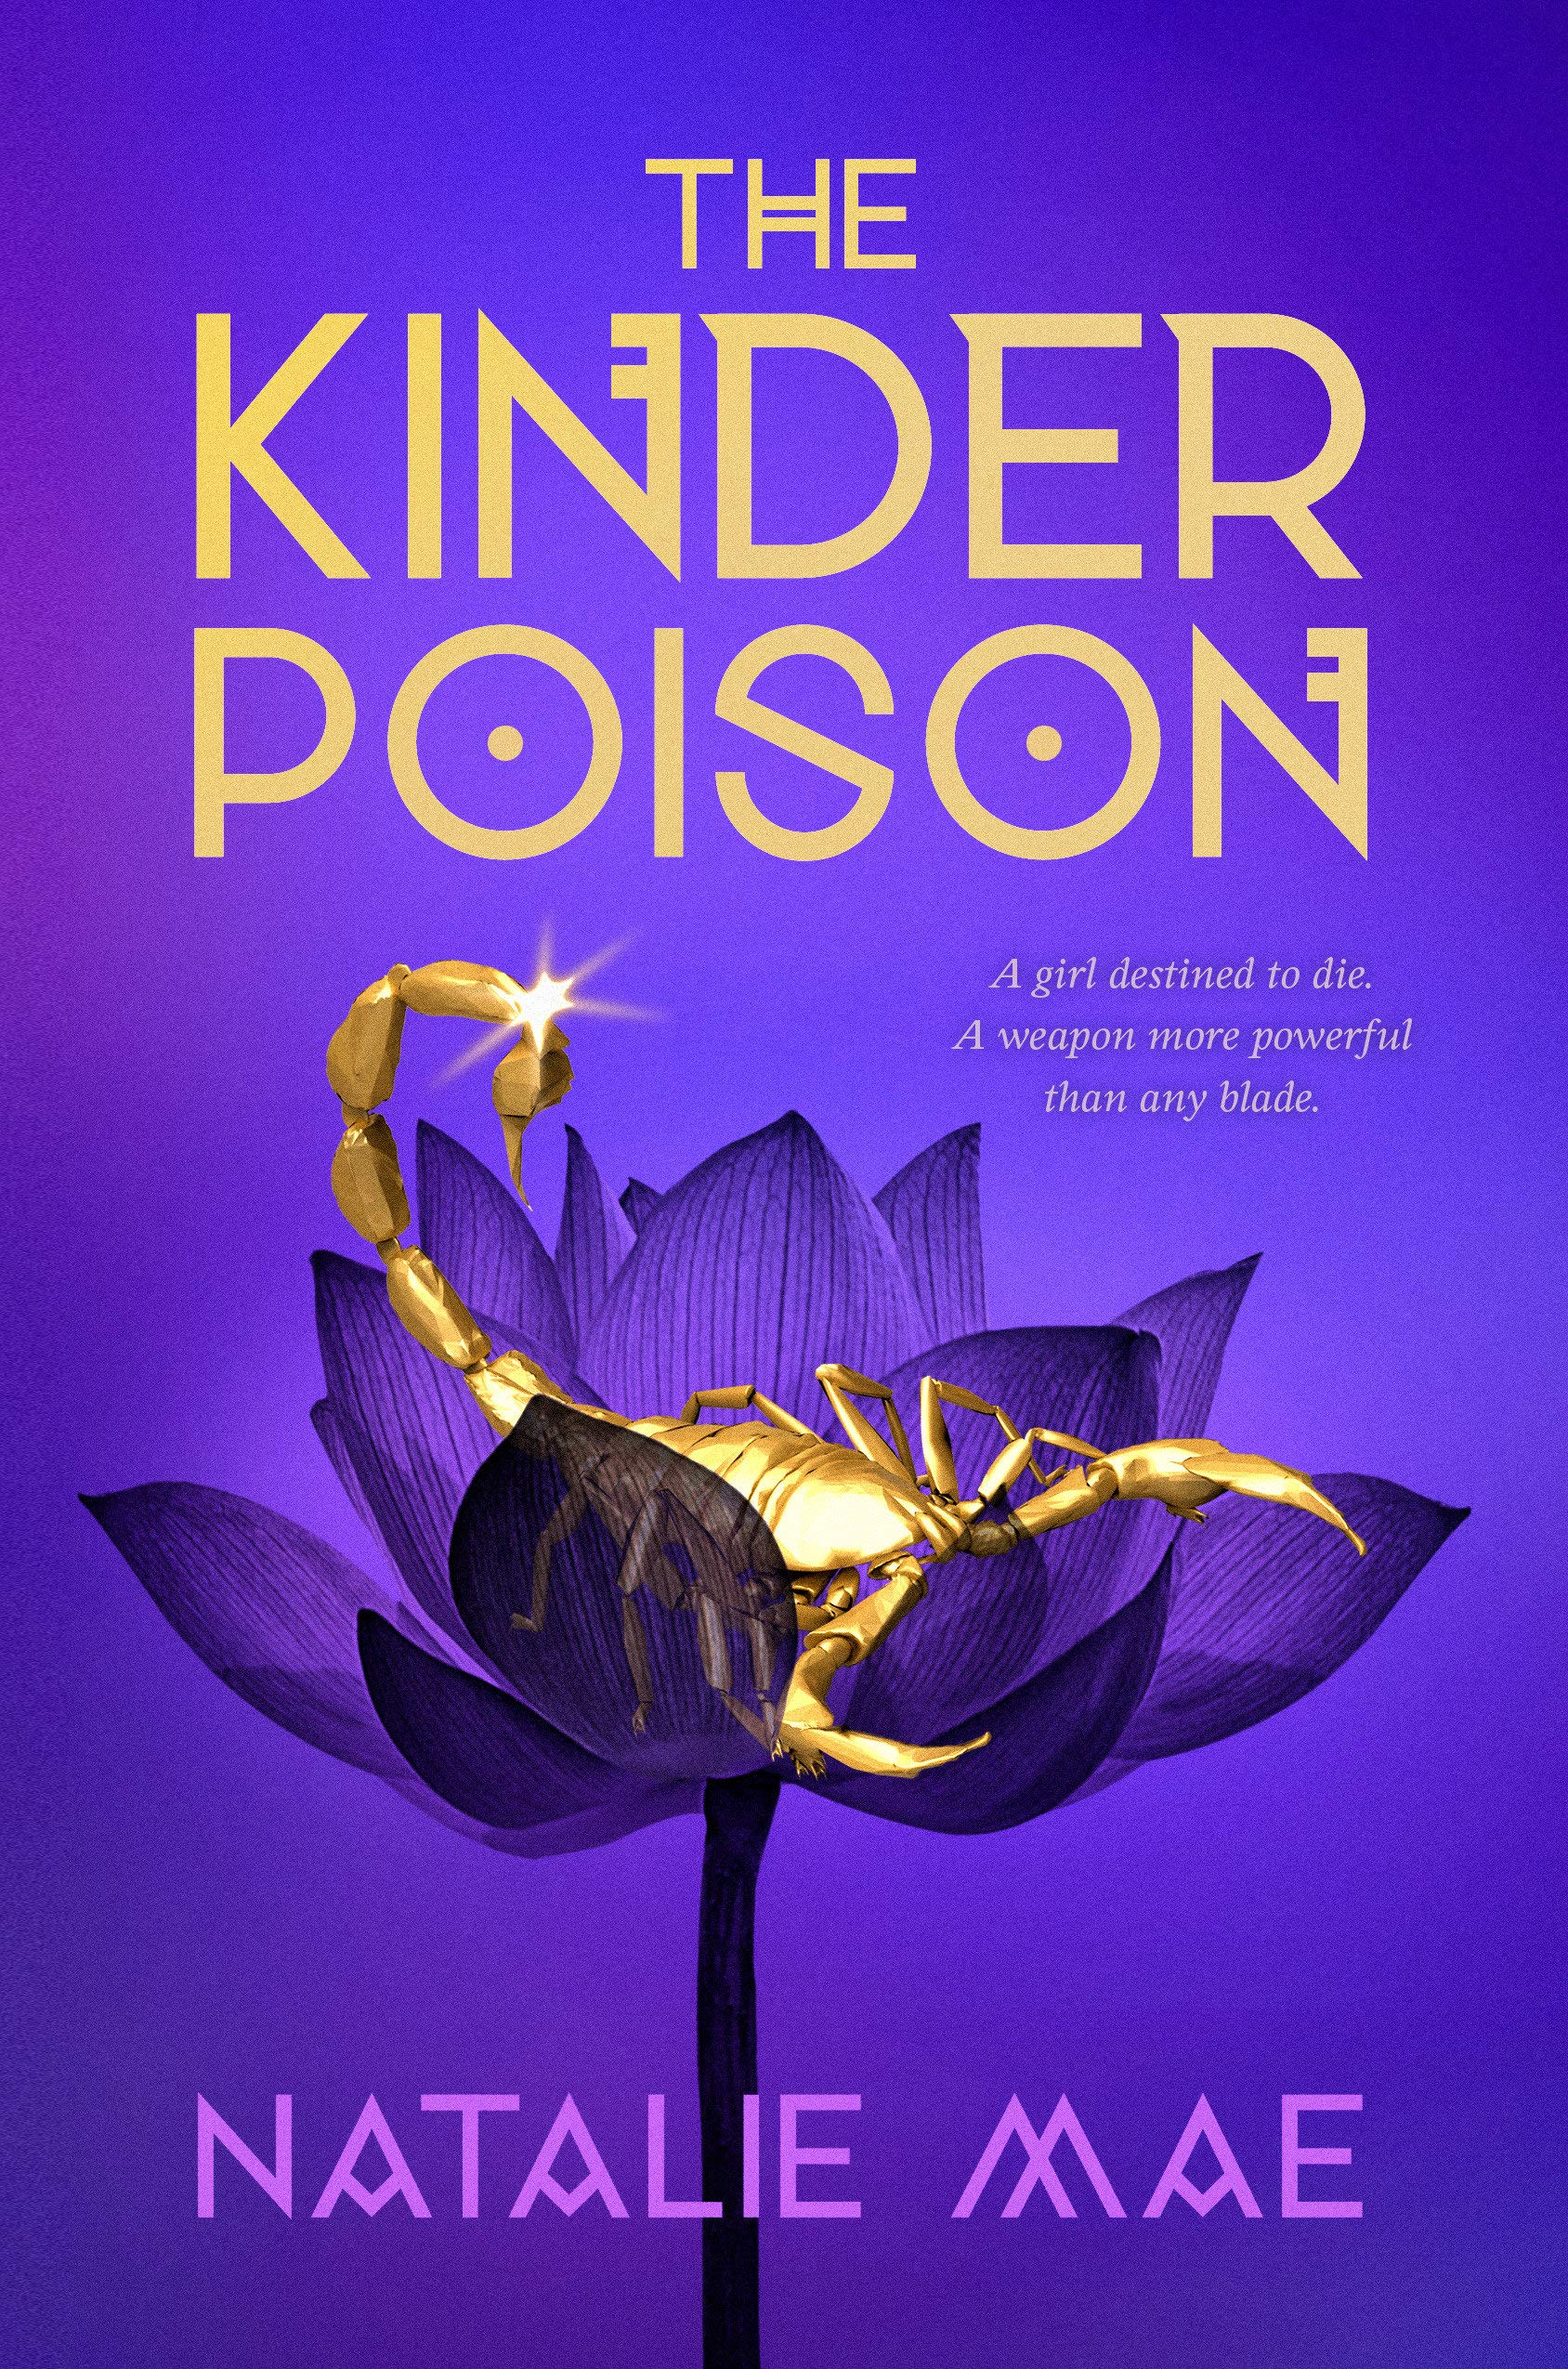 Image result for the kinder poison cover